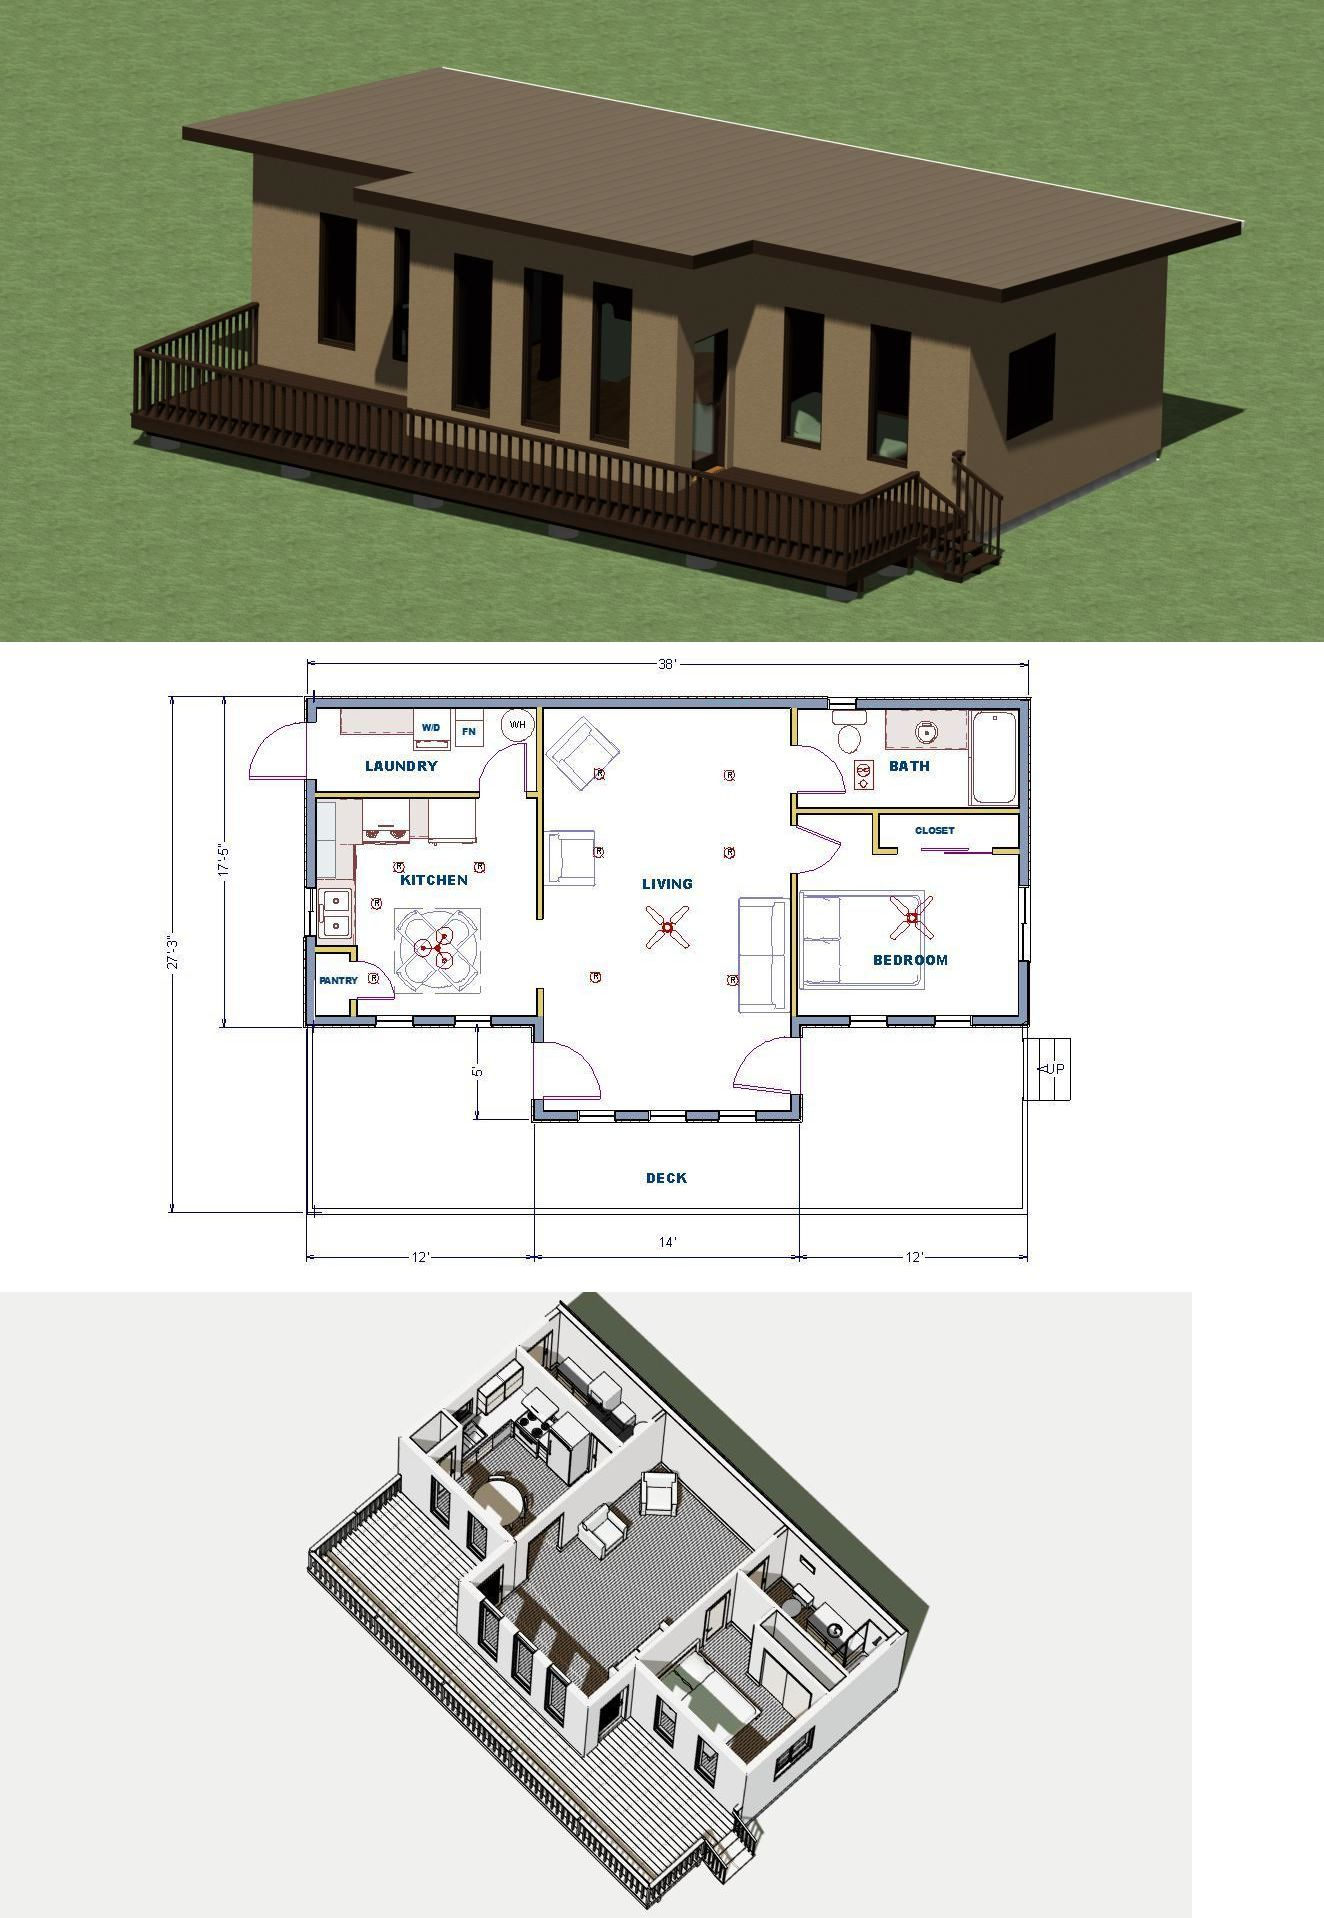 Building Plans And Blueprints 42130 Small Modern Style House Construction Plans 778 Sq Ft With En House Construction Plan Construction Plan Home Construction